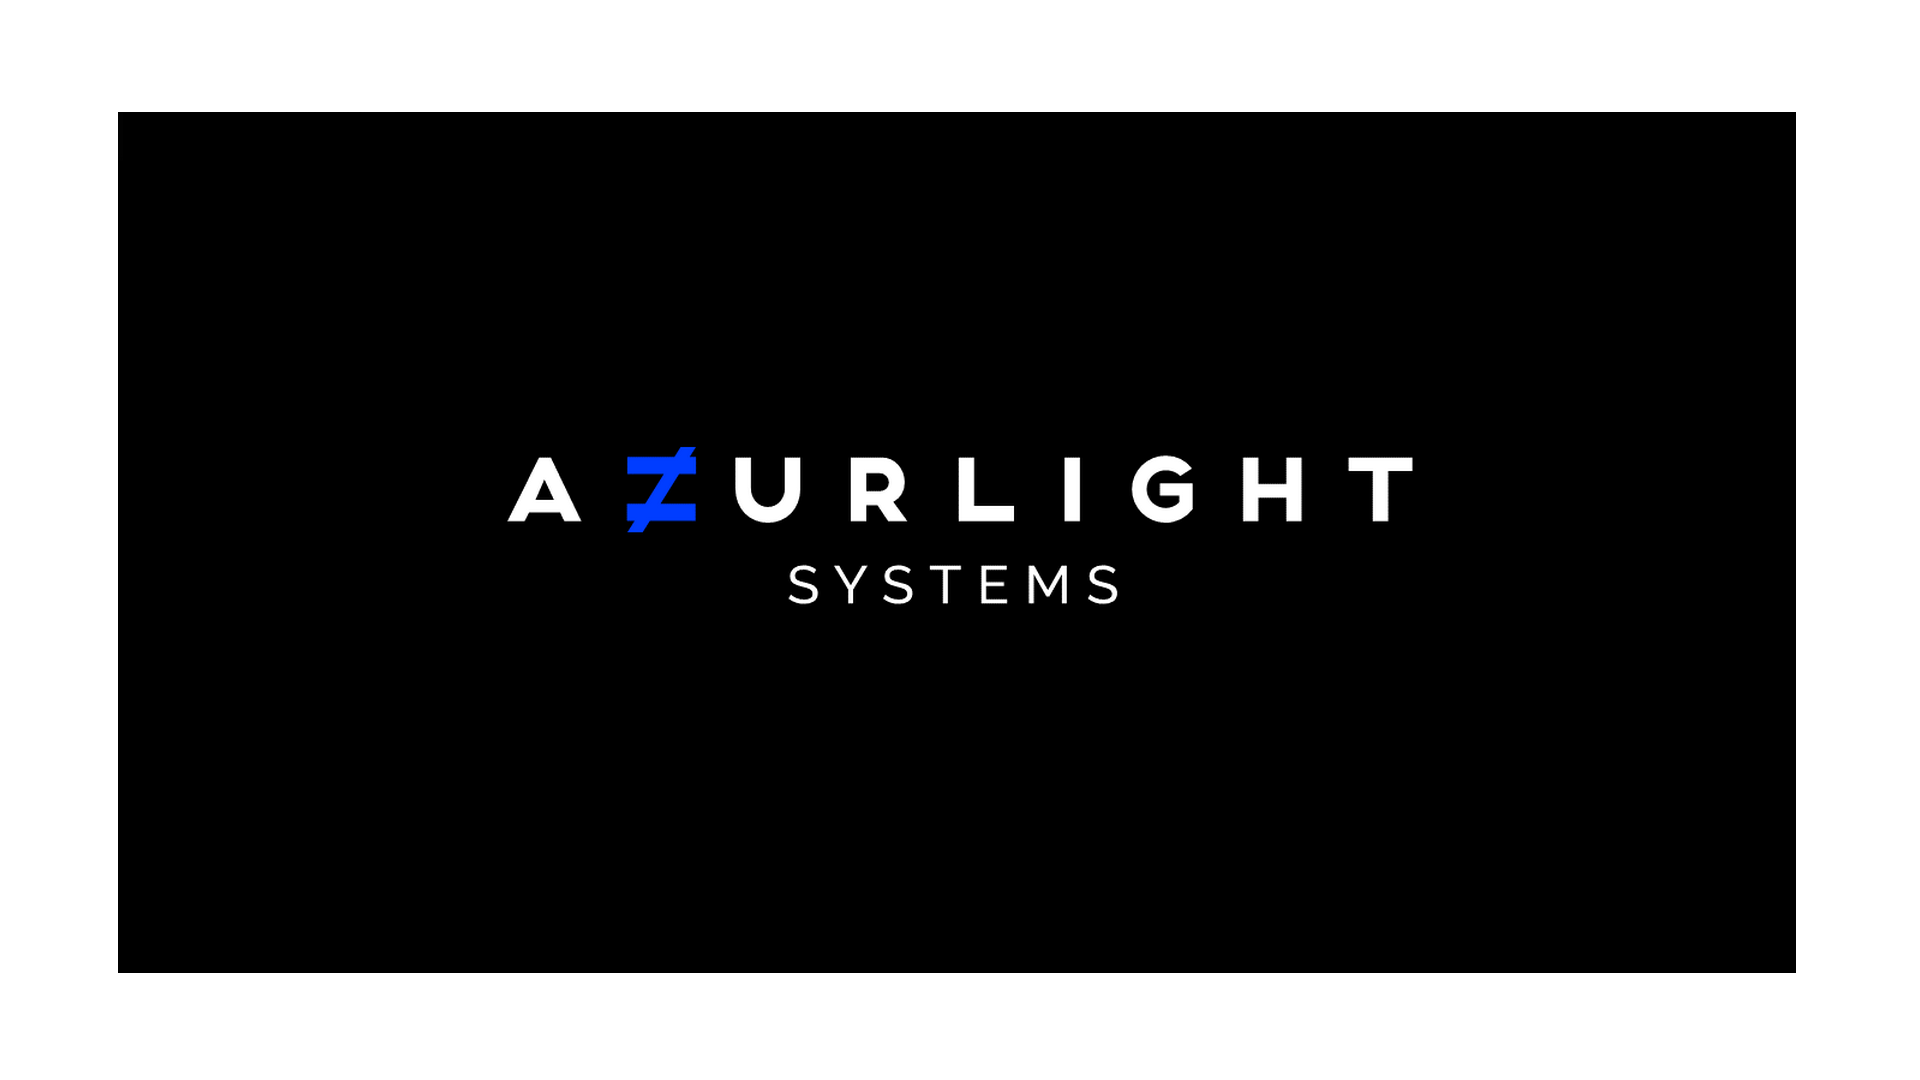 Azurlight Systems New Visual Identity Logo Rebranding Graphic Design Graphism